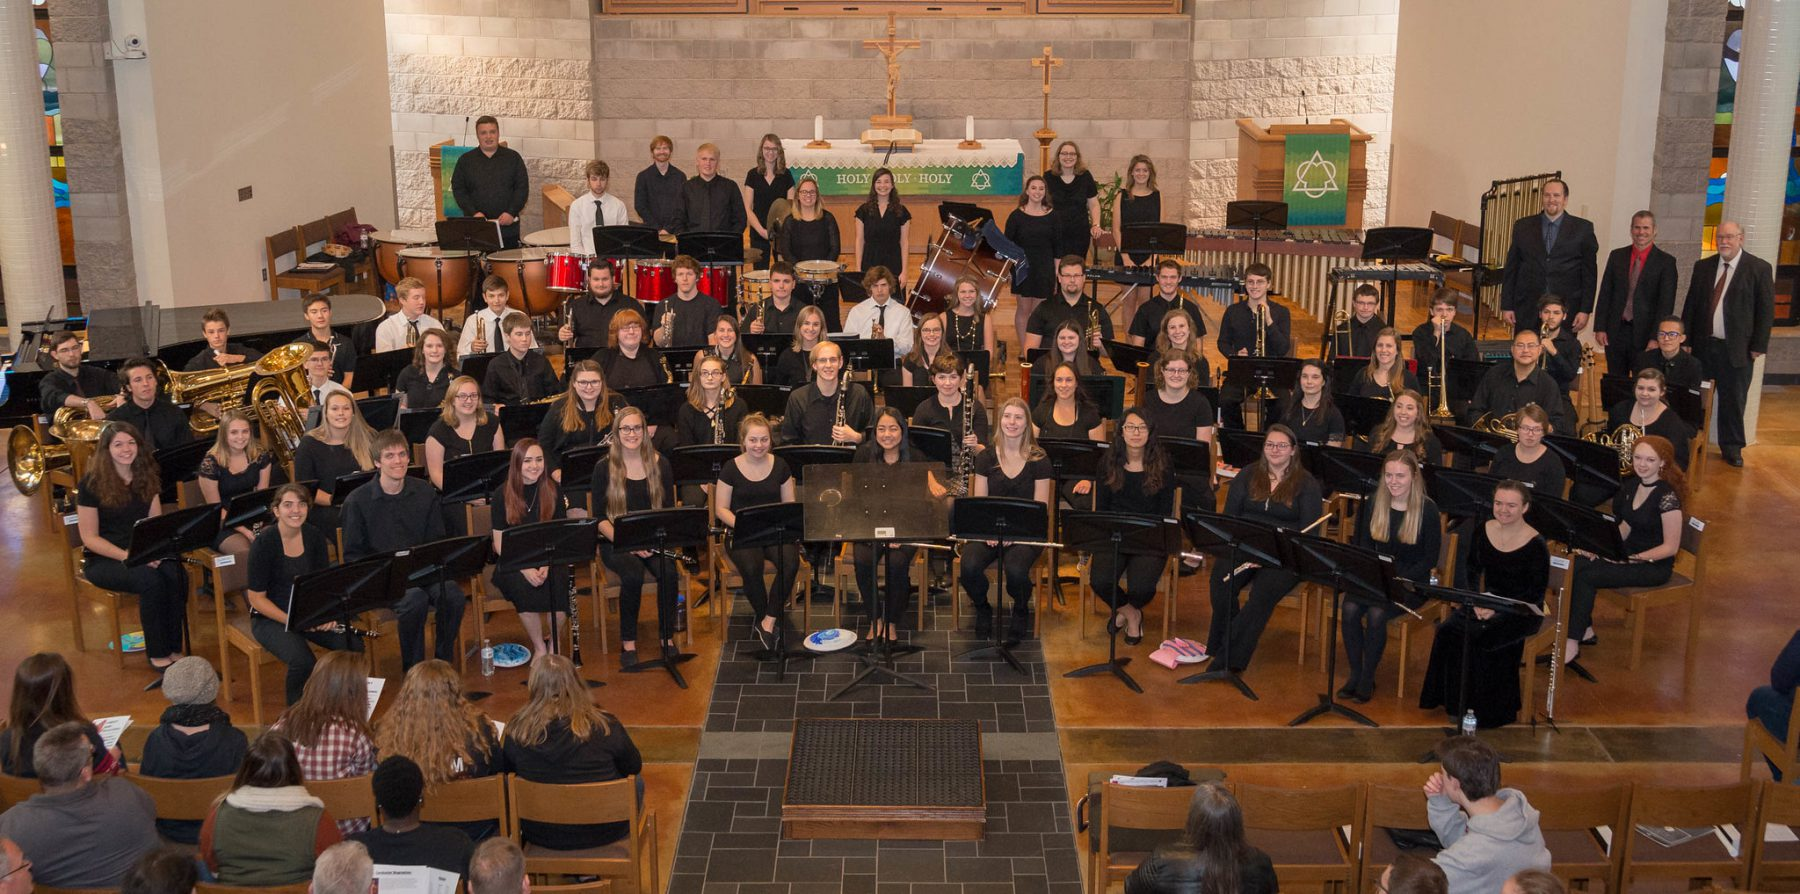 Group photo of performers with their instruments at the 2018-10 Concert Band Invitational, seated at the front of the chapel